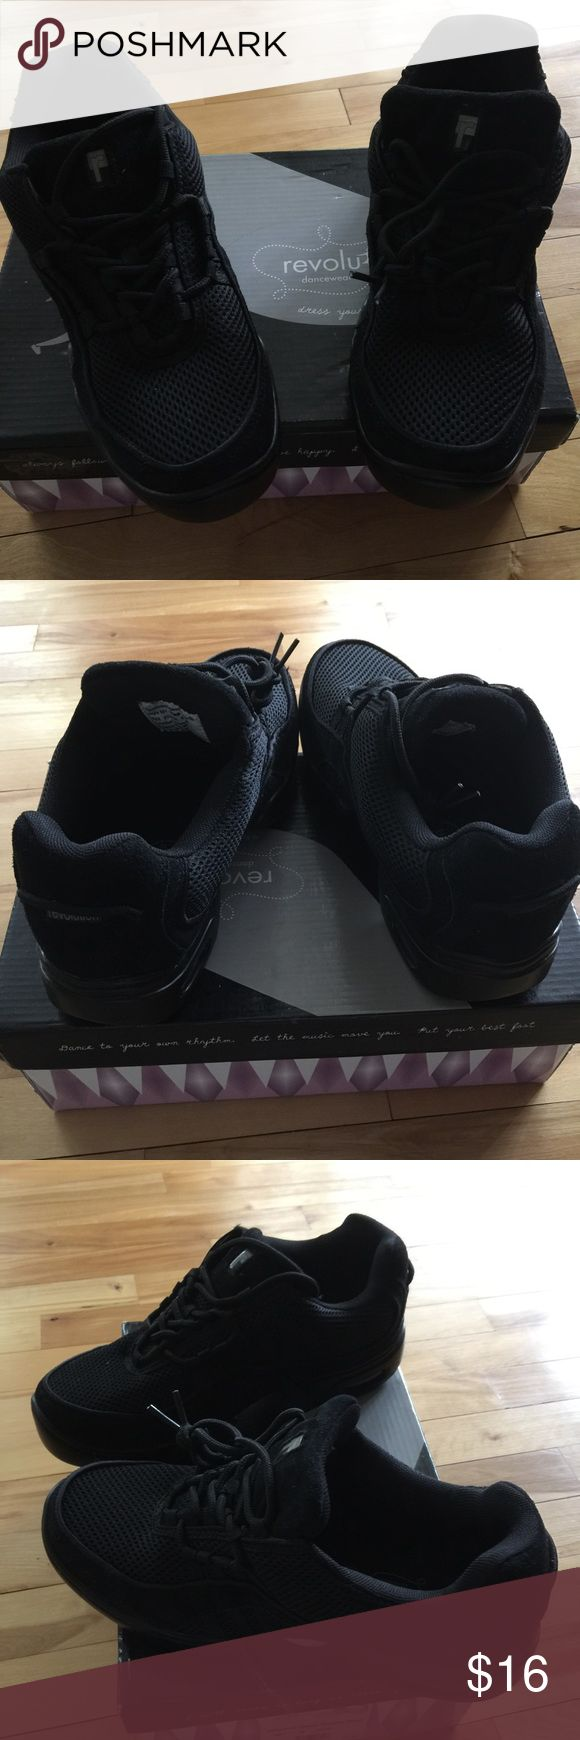 Revolution dance wear new black hip hop shoes, 10 Boys size 10 revolution dancewear Ultra Arch Dance sneaker. Black. Used for hip hop. Leather upper. Size 10 boys. New, in box. Nonsmoking home. revolution dancewear Shoes Sneakers